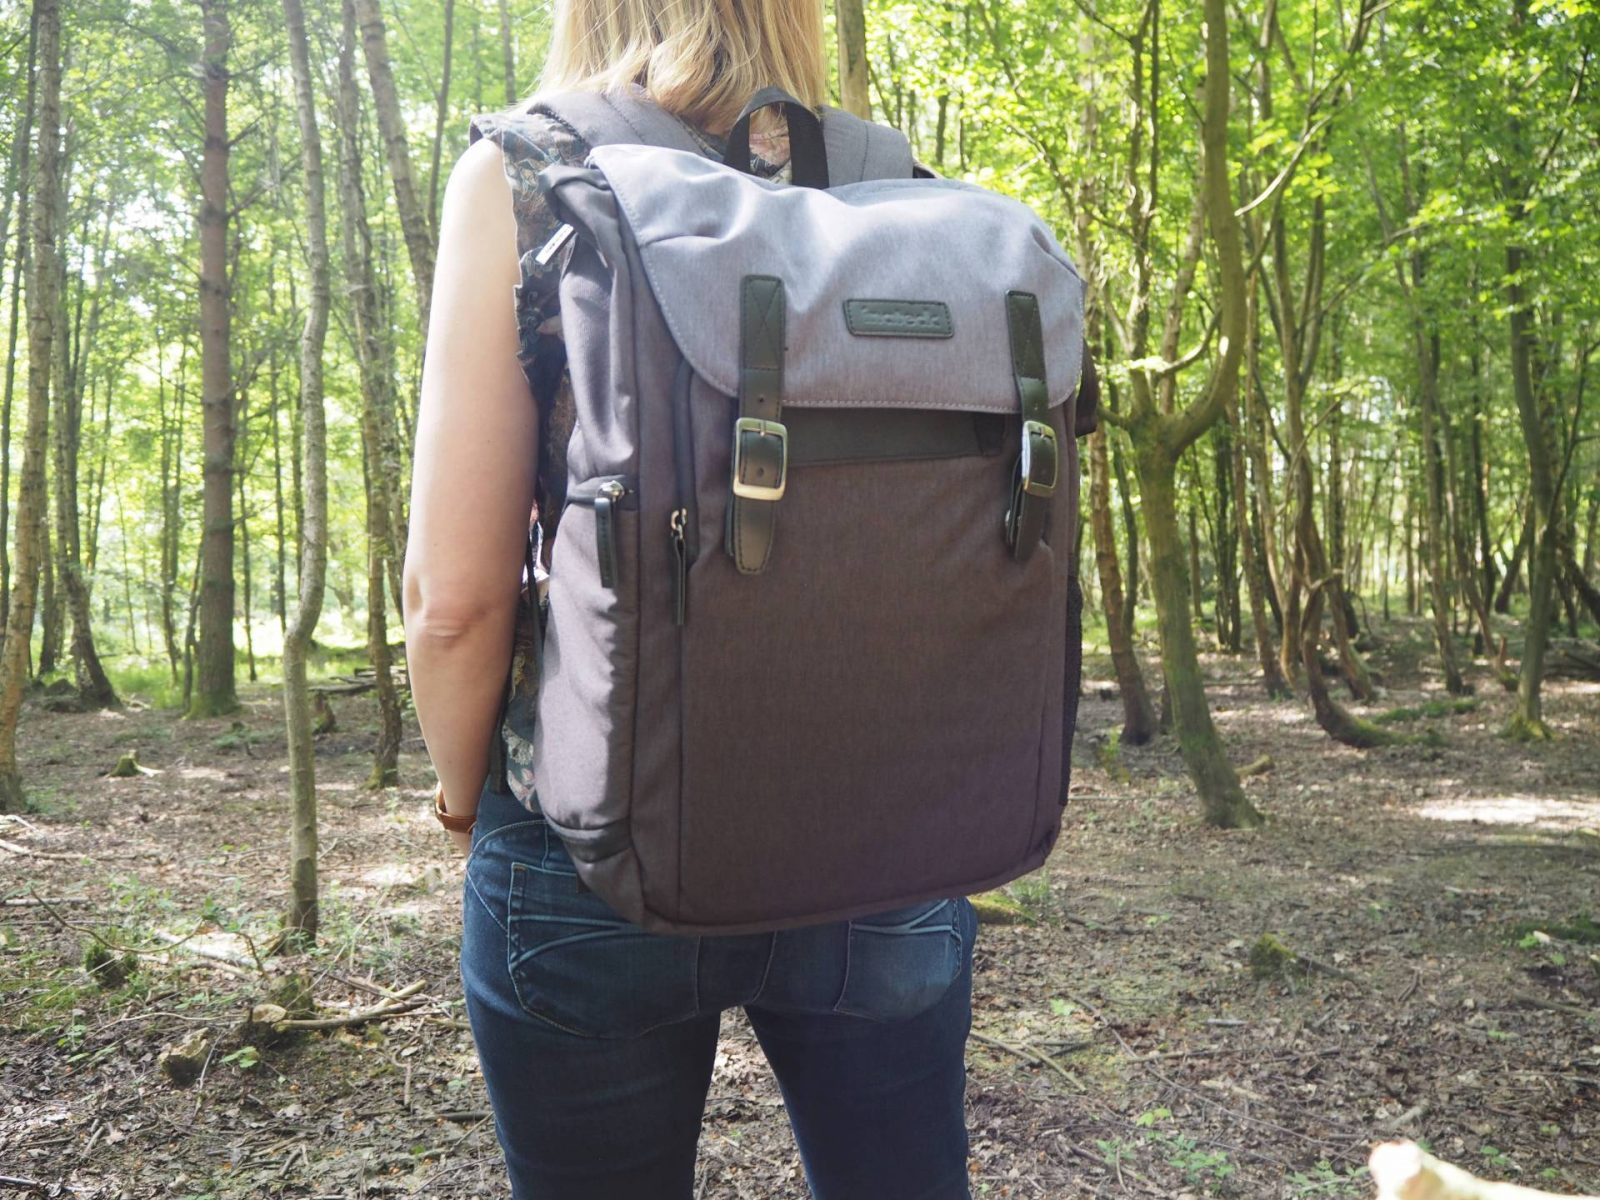 Getting Out and About Easier With Inateck…